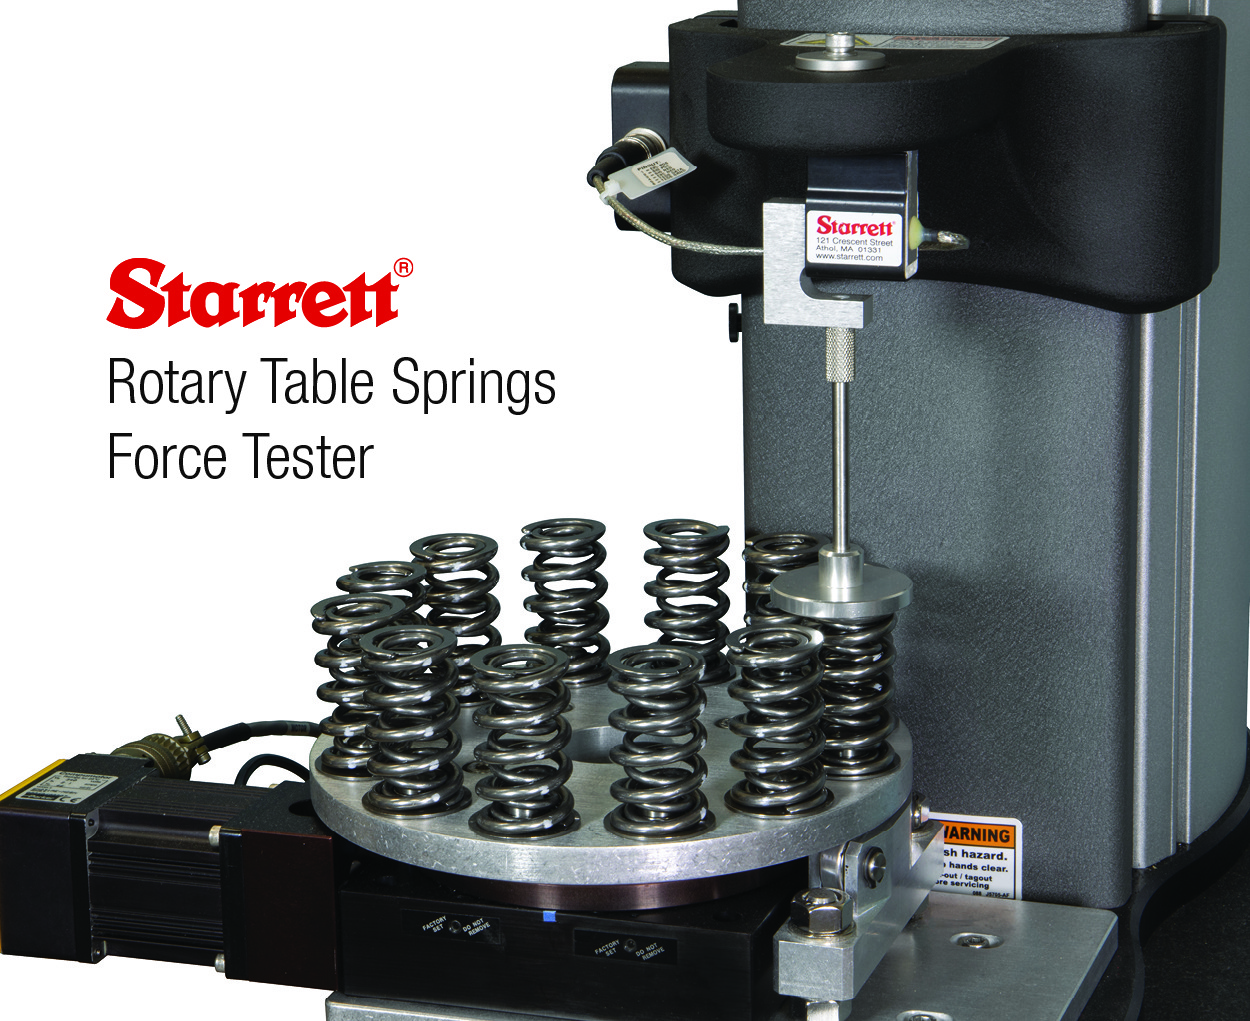 1278, 1278, rotary, rotary.jpg, 1973692, https://starrett-metrology.co.uk/wp-content/uploads/2020/05/rotary.jpg, https://starrett-metrology.co.uk/rotary-table-springs-force-tester/rotary/, , 5, , , rotary, inherit, 1262, 2020-05-19 12:17:08, 2020-05-19 12:17:08, 0, image/jpeg, image, jpeg, https://starrett-metrology.co.uk/wp-includes/images/media/default.png, 1250, 1021, Array